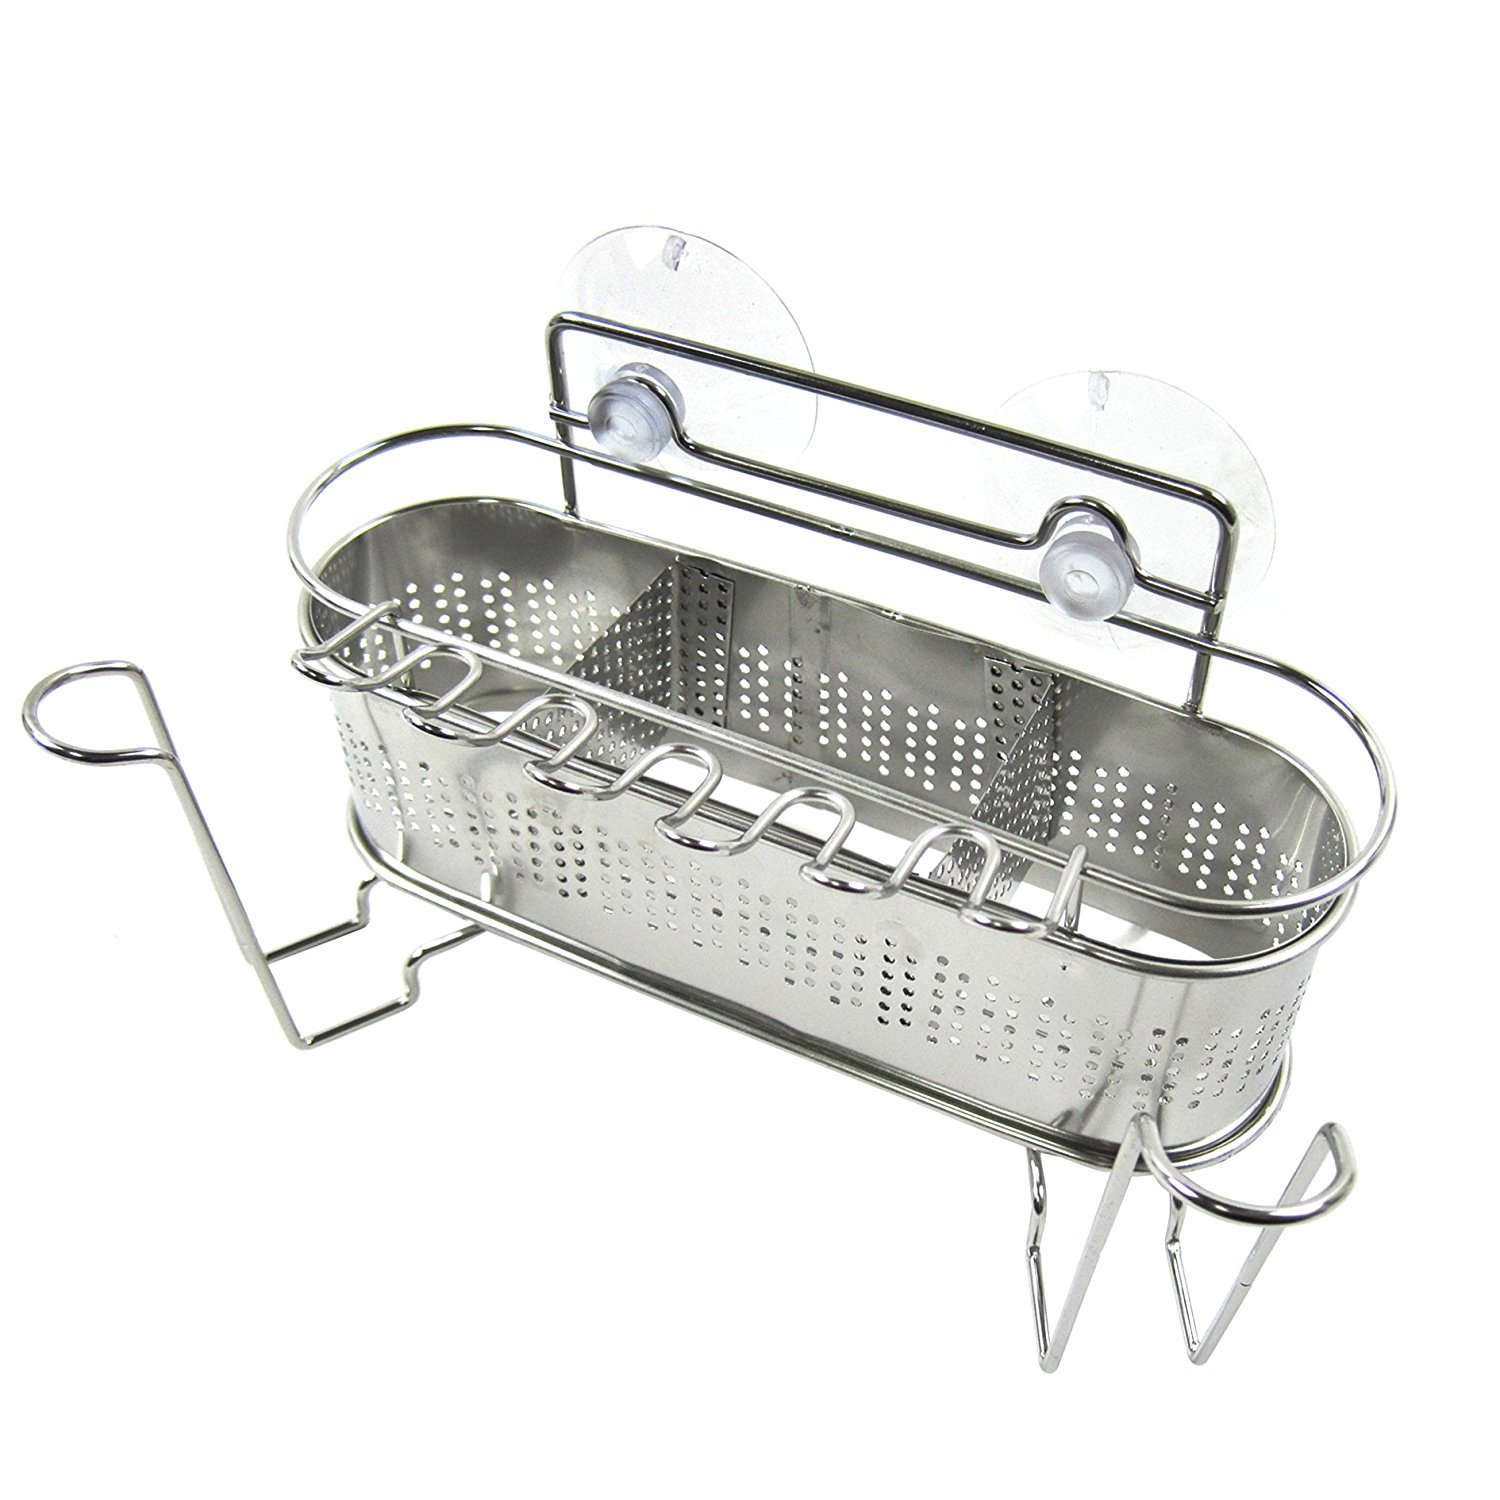 Cheap Silver Cup Holder, find Silver Cup Holder deals on line at ...